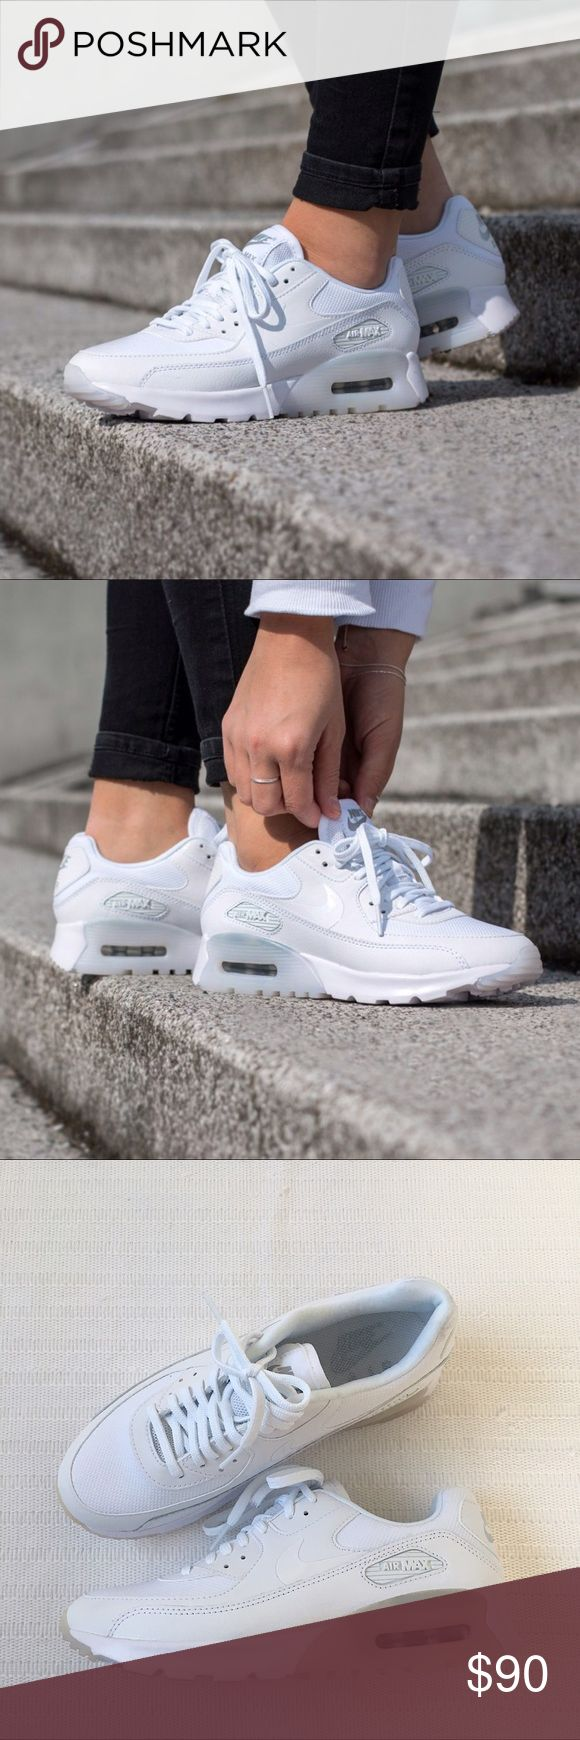 Women's Nike Air Max 90 Ultra Essential Sneakers Women's Nike Air Max 90 Ultra Essential Sneakers offers striking color combination and reliable, lightweight cushioning. Style/Color: 724981-101  • Women's size 6.5  • NEW in box (no lid) • No trades •100% authentic Nike Shoes Sneakers